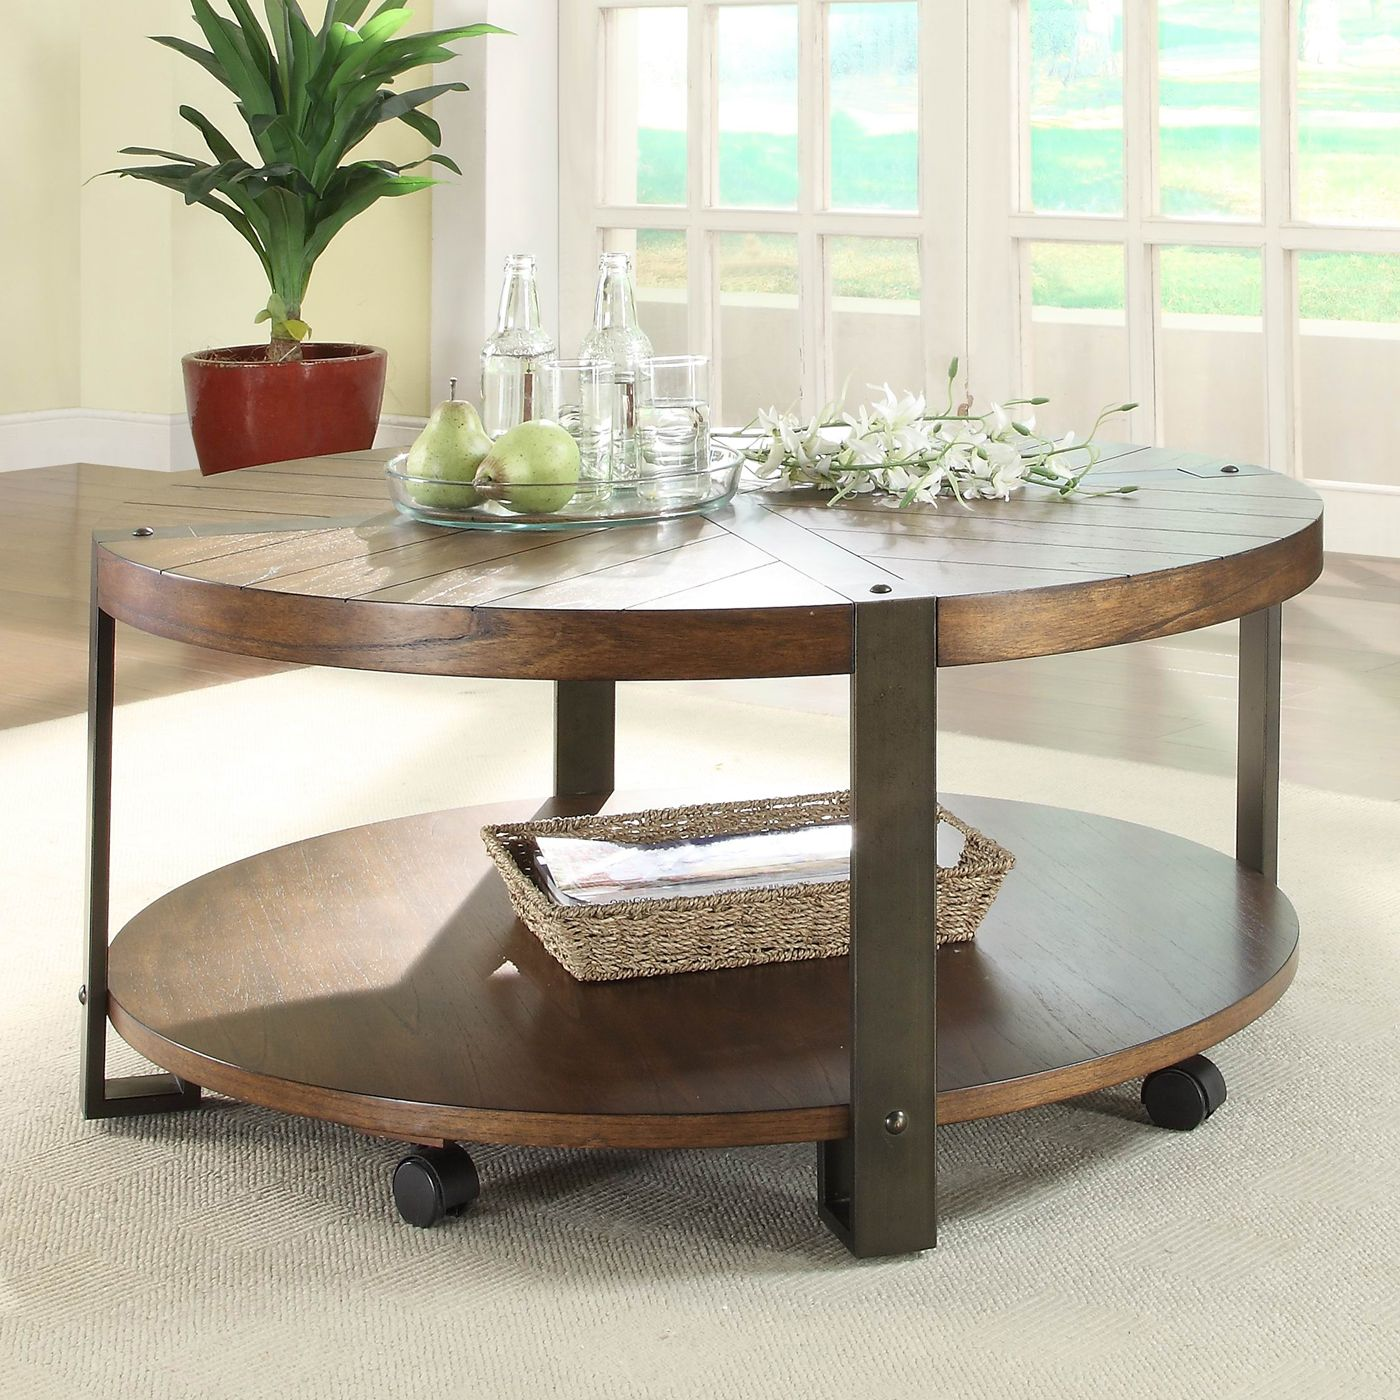 Homelegance 343801 northwood round cocktail table on